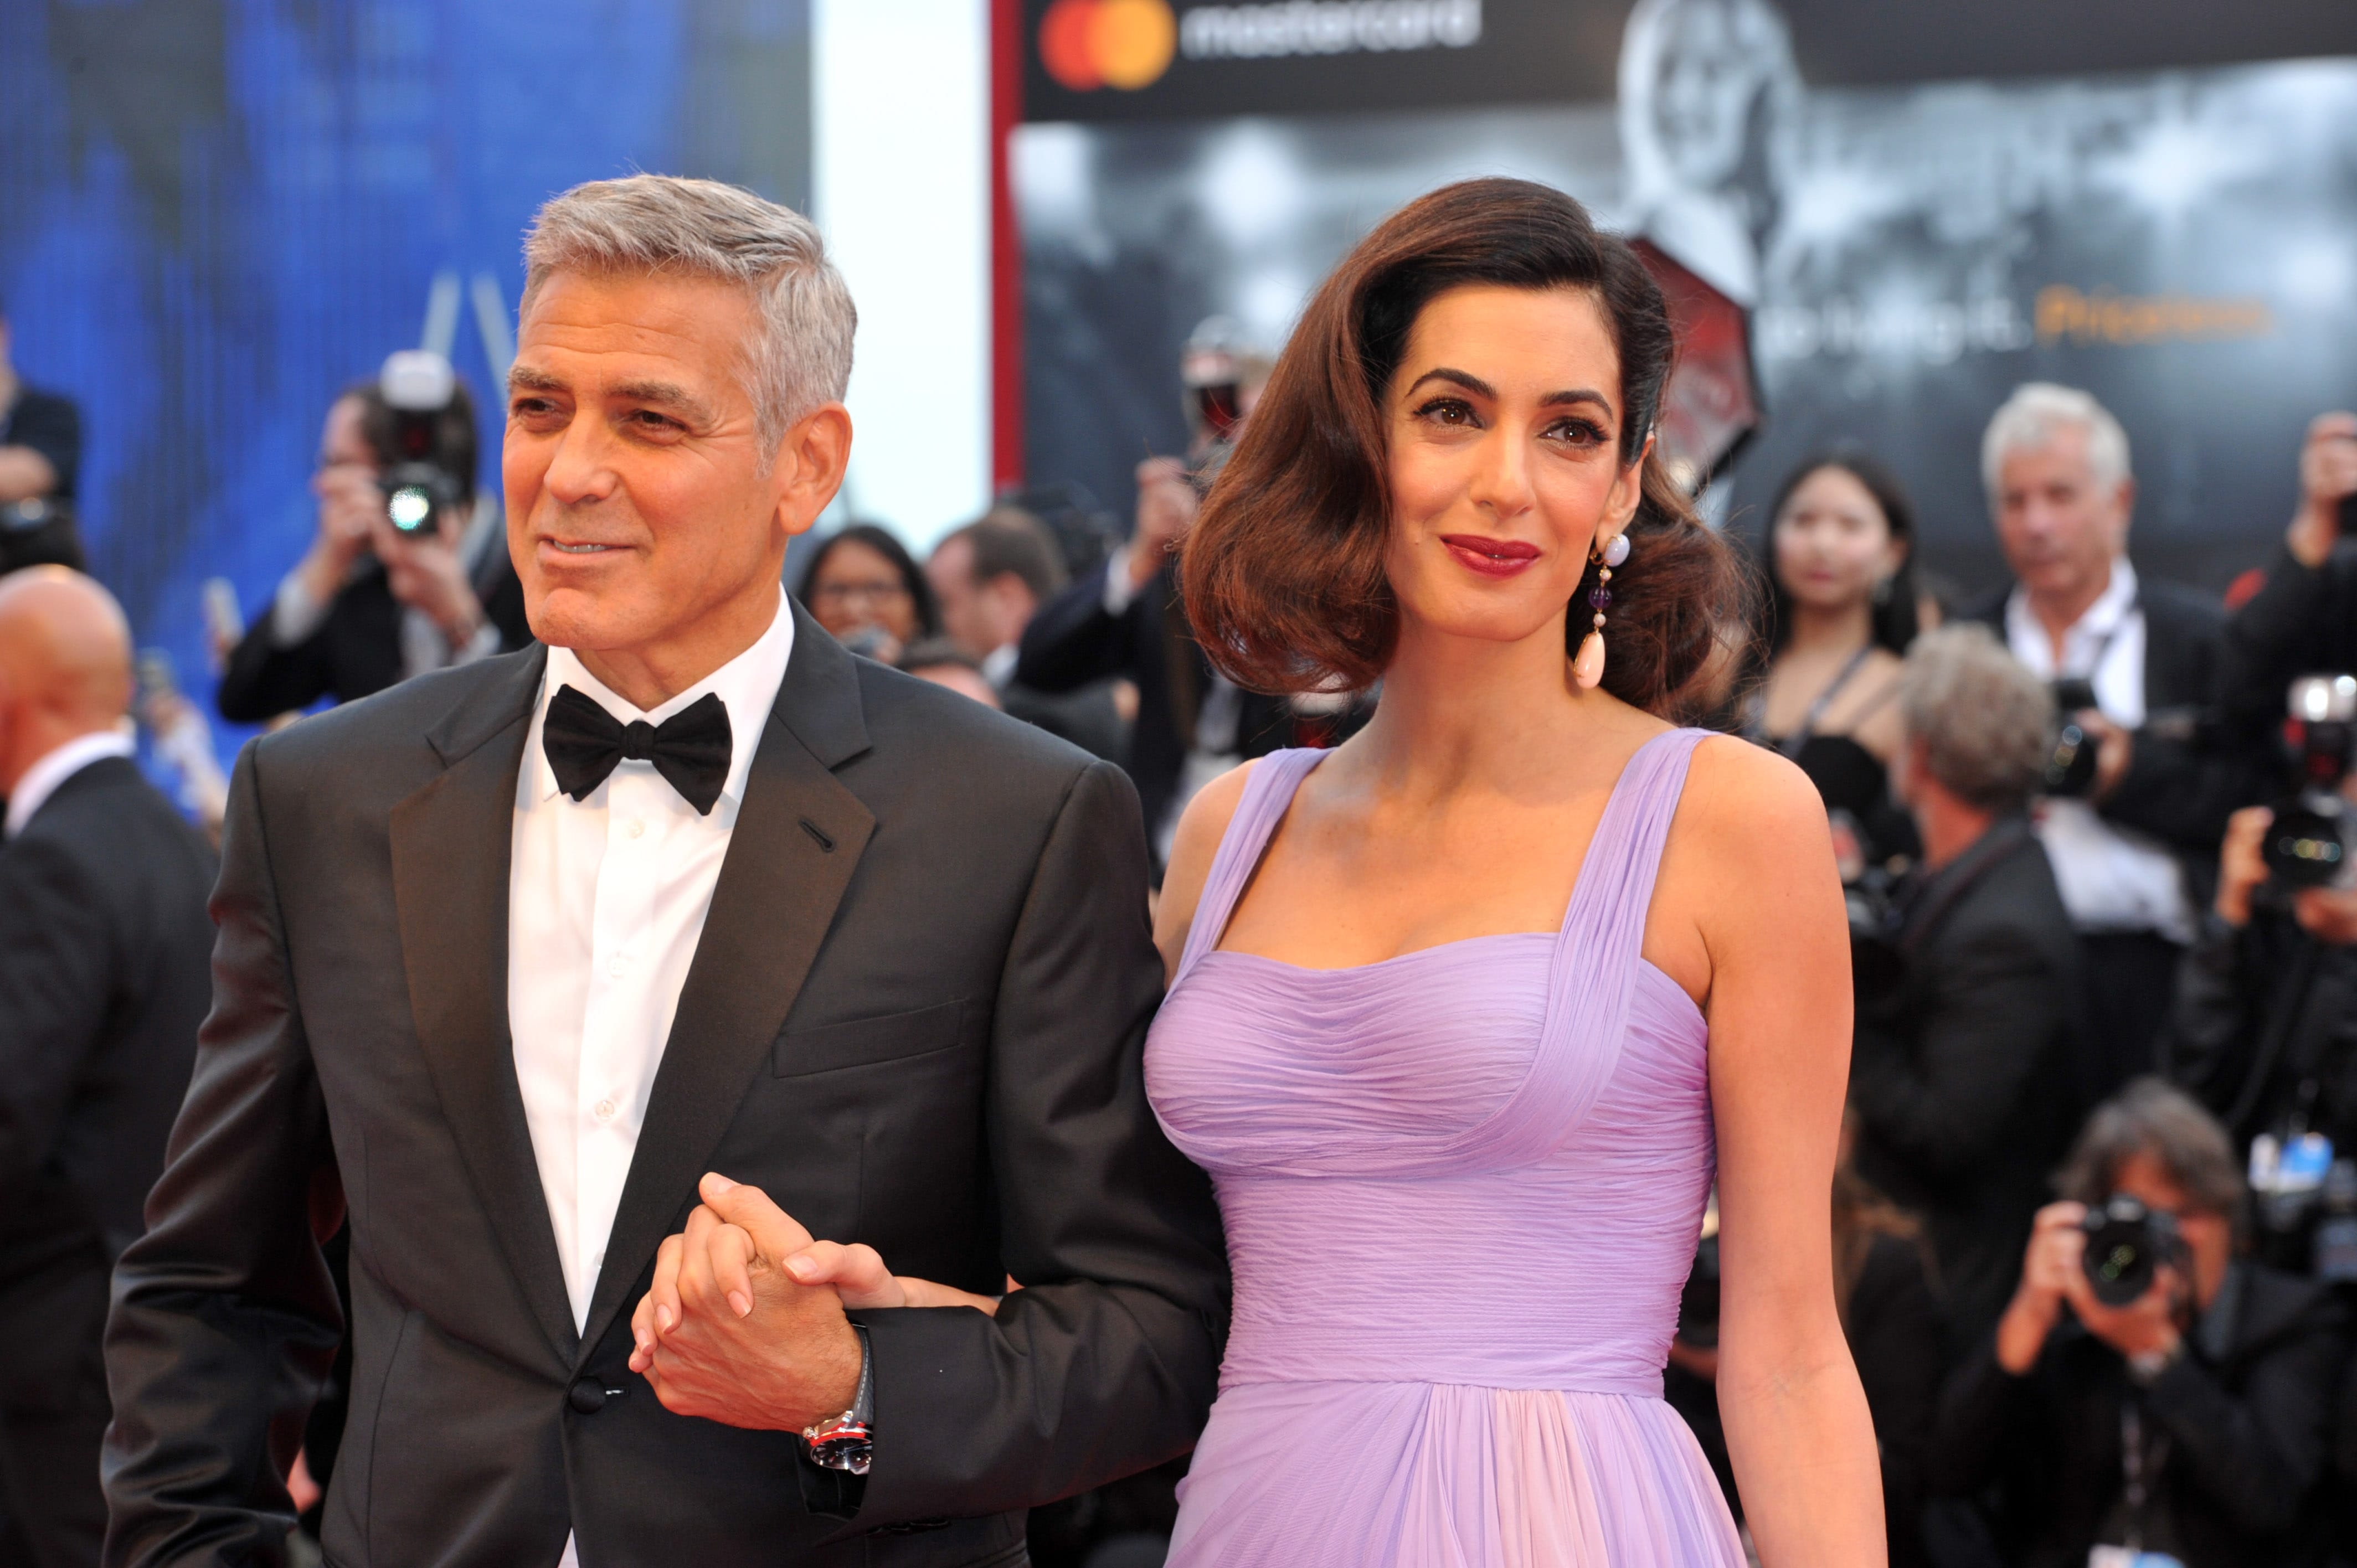 Amal Clooney's achievements throughout her outstanding career as a human rights attorney eclipse her once-Sexiest-Man-Alive husband George Clooney. (Photo: WENN)